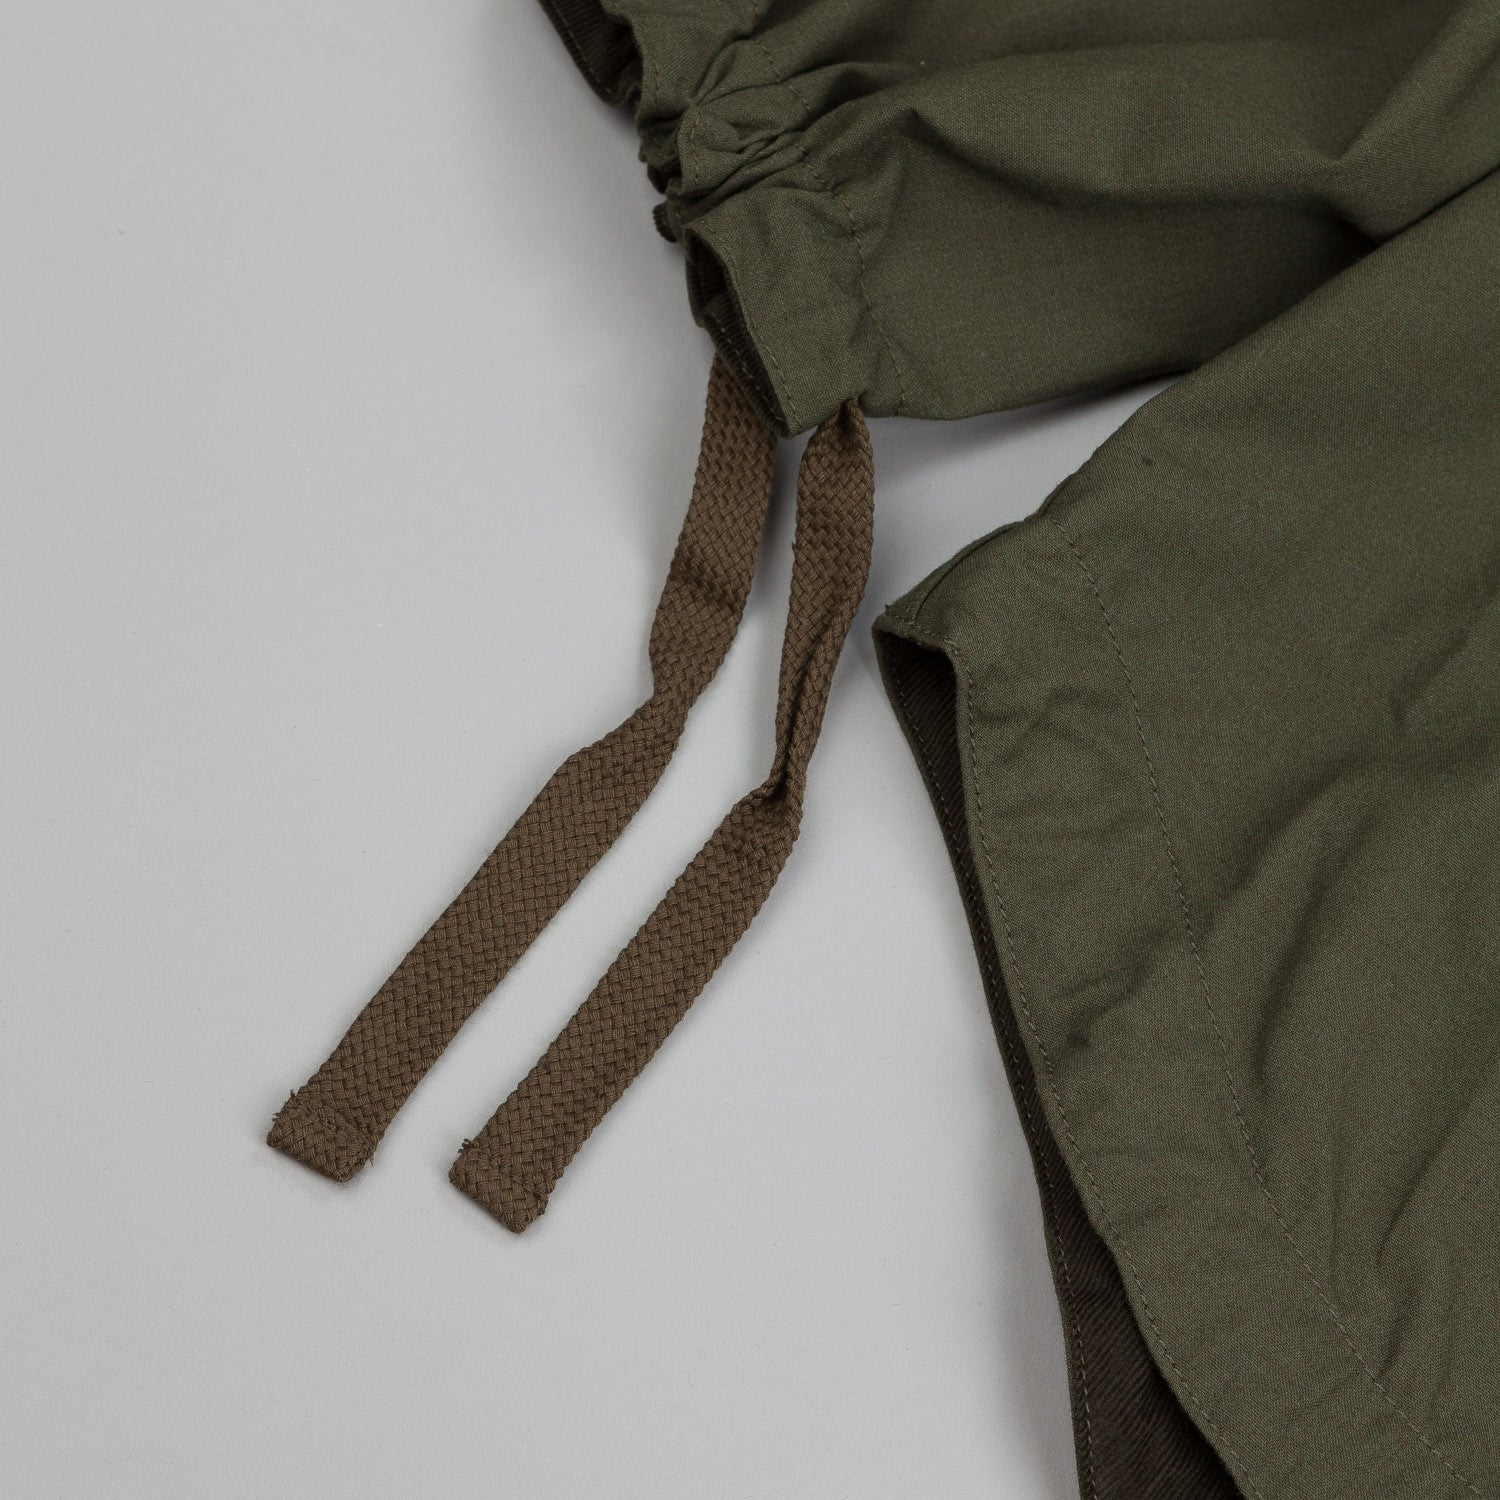 Snow Peak Fire Protect Poncho Jacket Olive